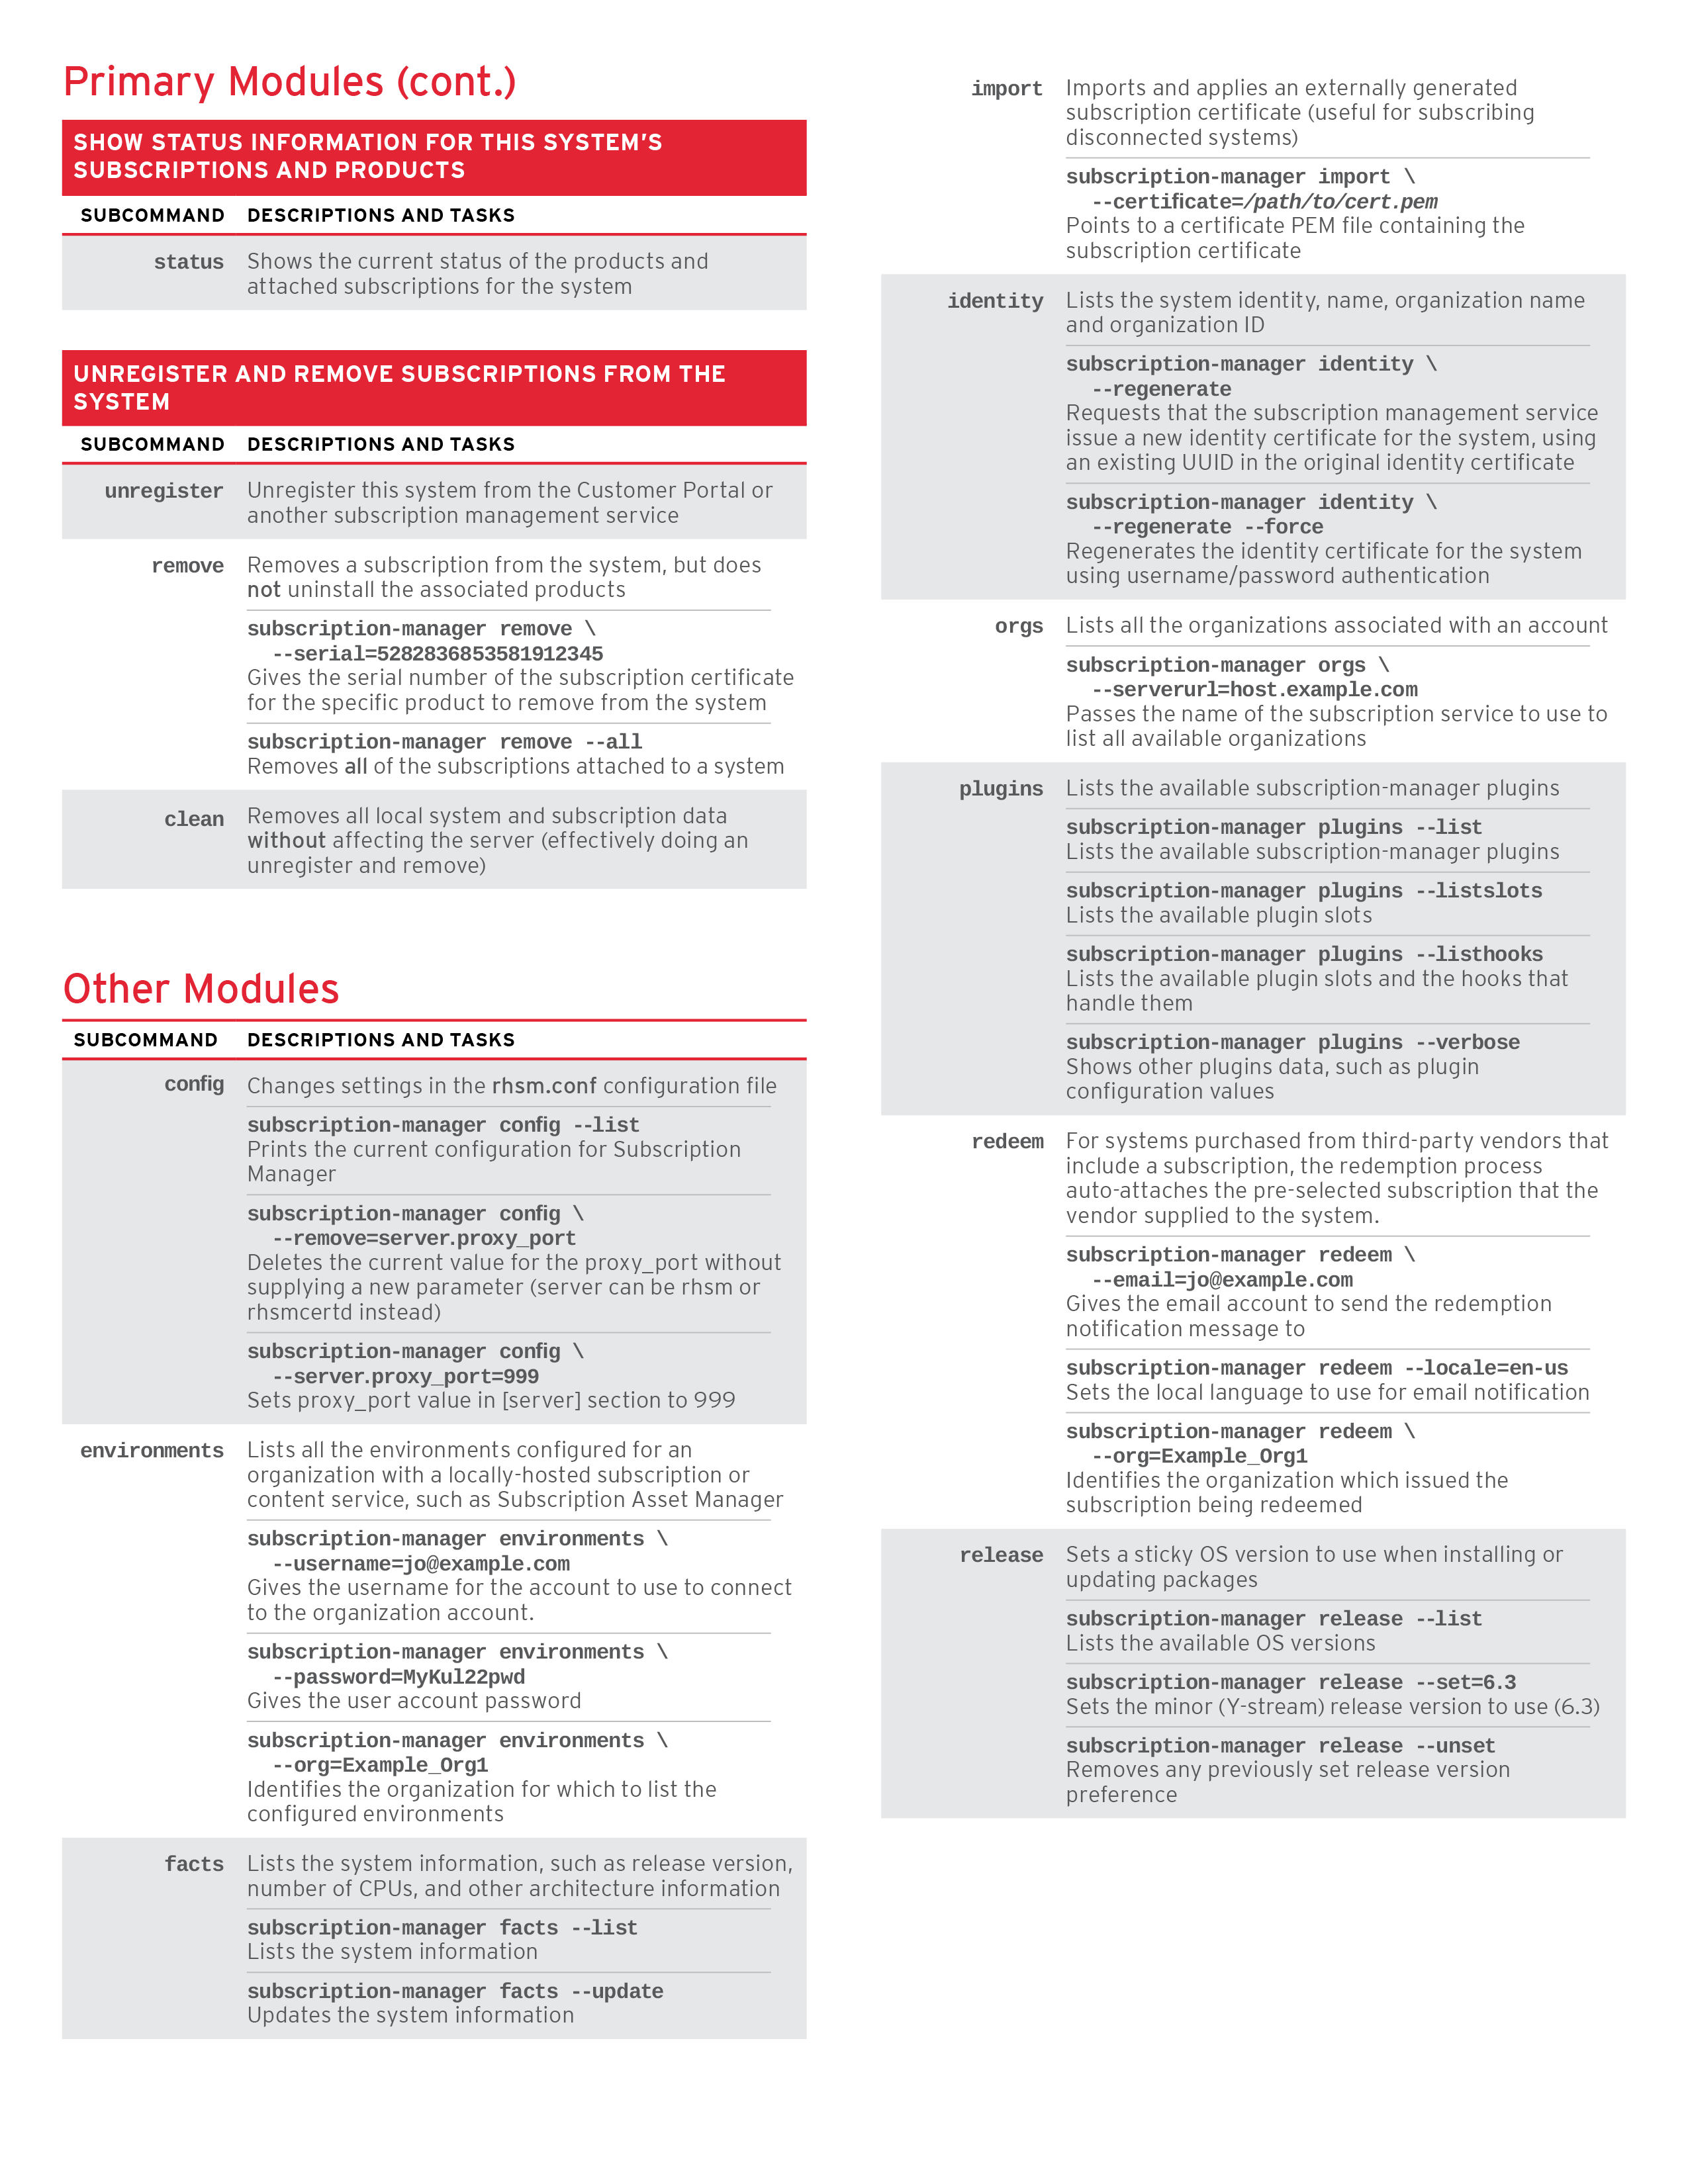 Subscription-Manager Command Cheat Sheet for Red Hat